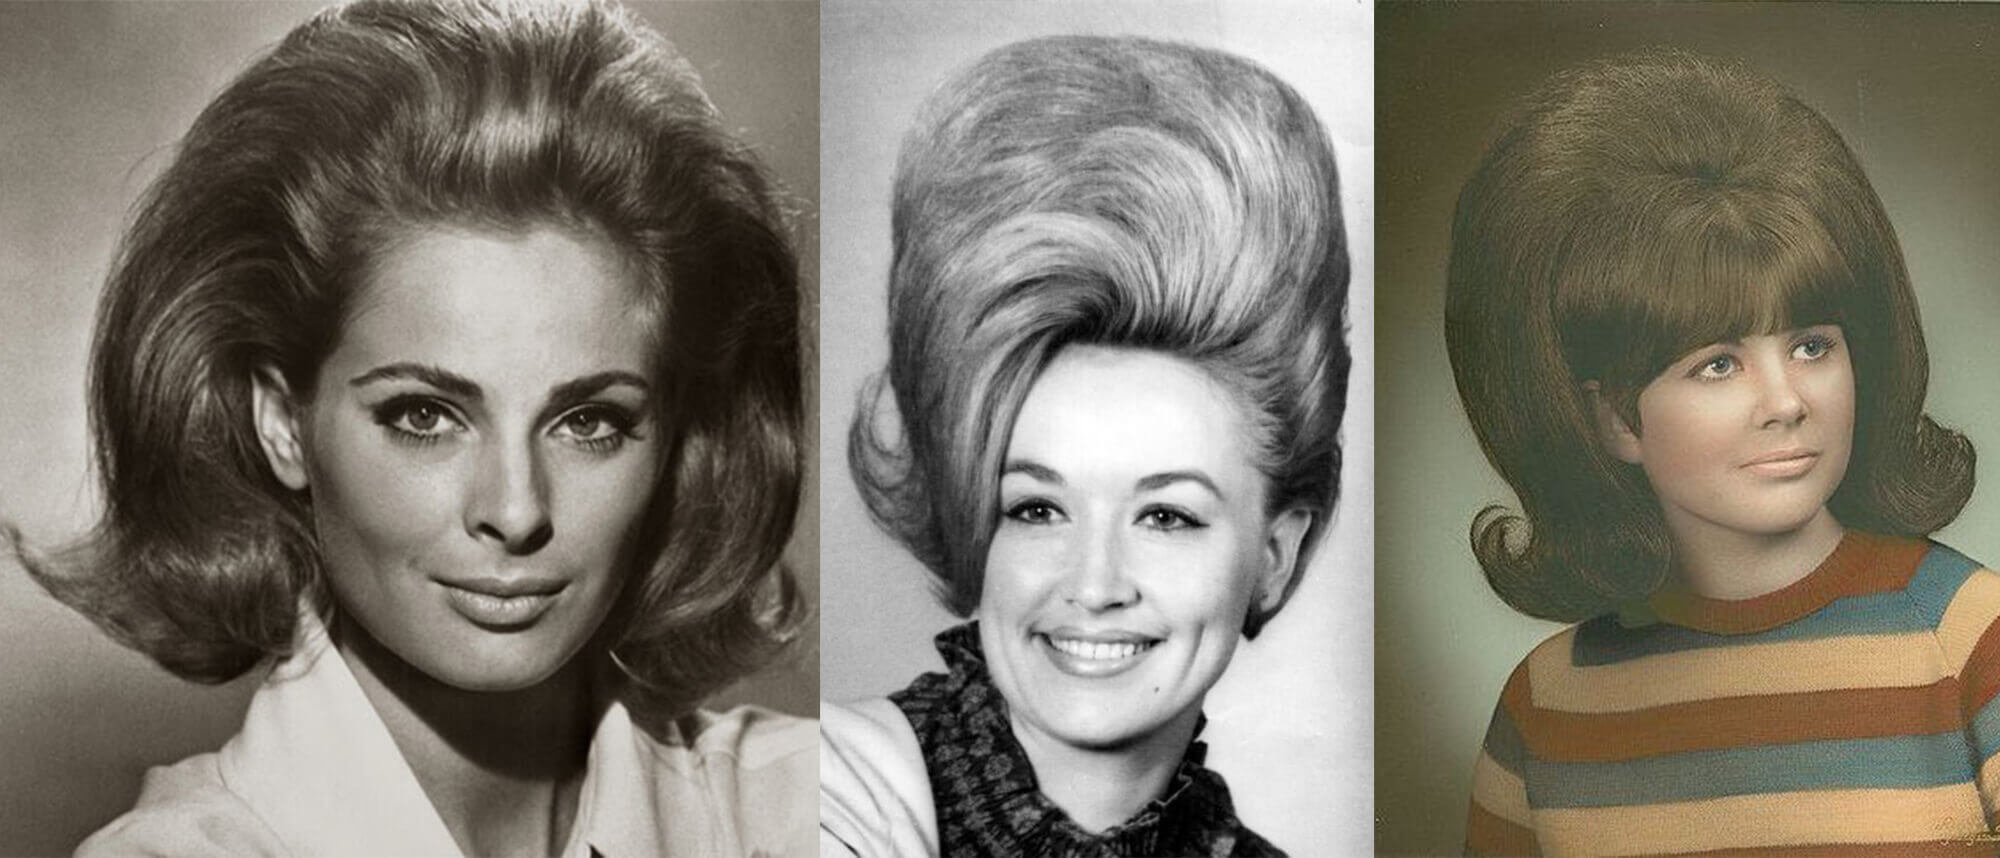 1960s hairstyle trends